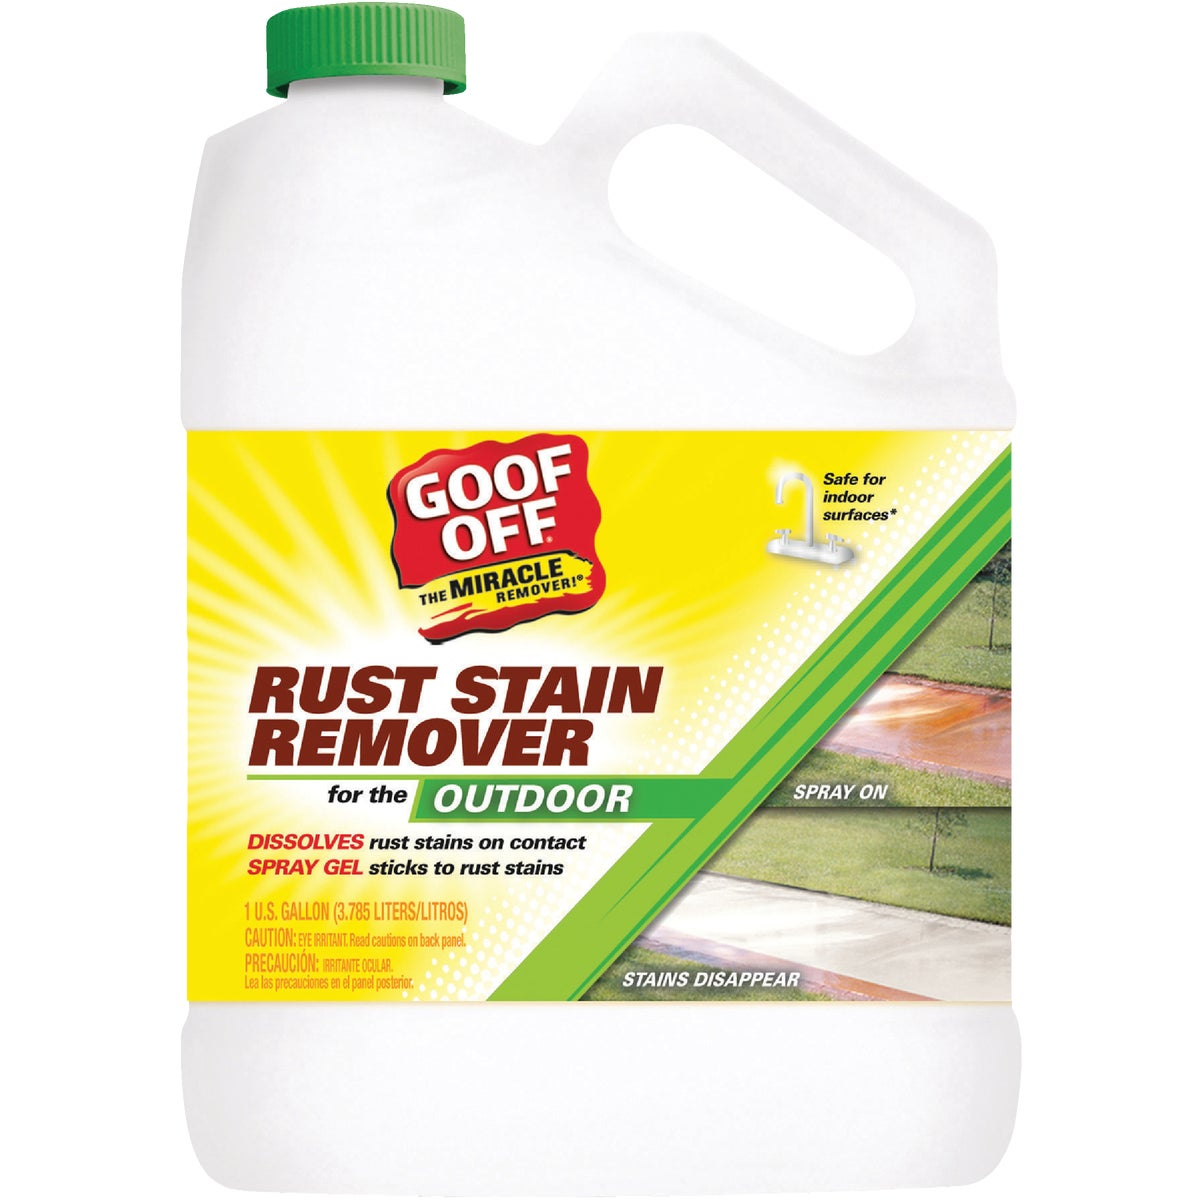 GAL RUST STAIN REMOVER - GSX00101 by Wm Barr